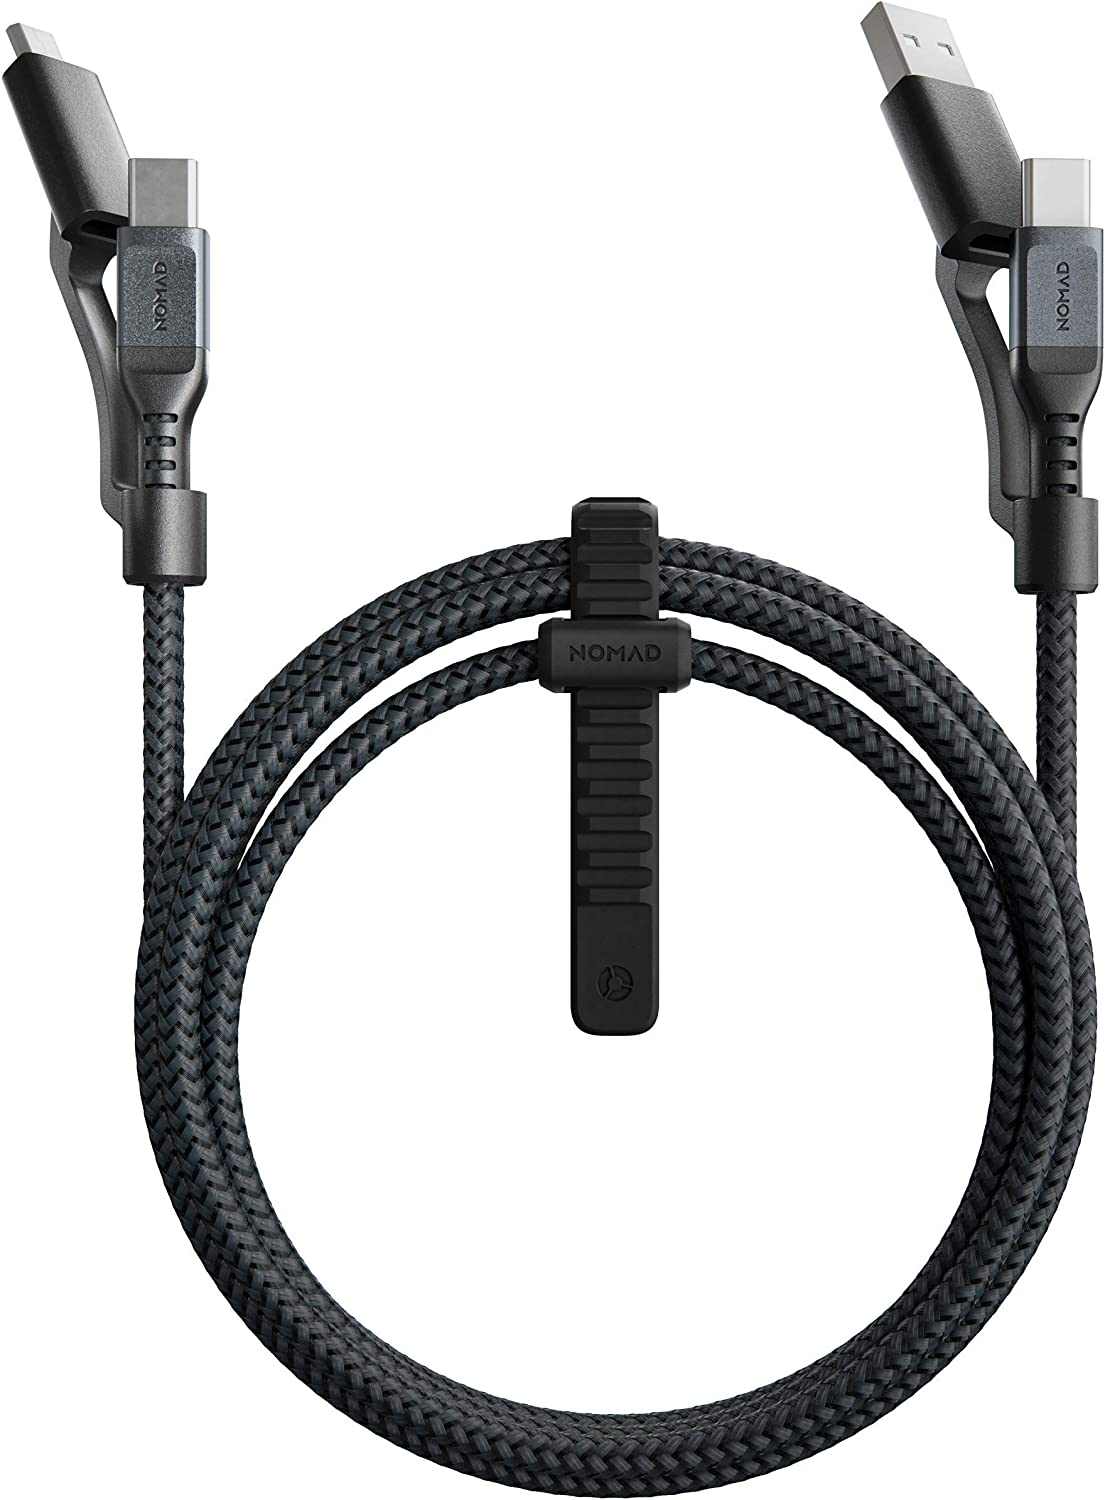 Nomad USB-C Cable. Image Credit: amazon com